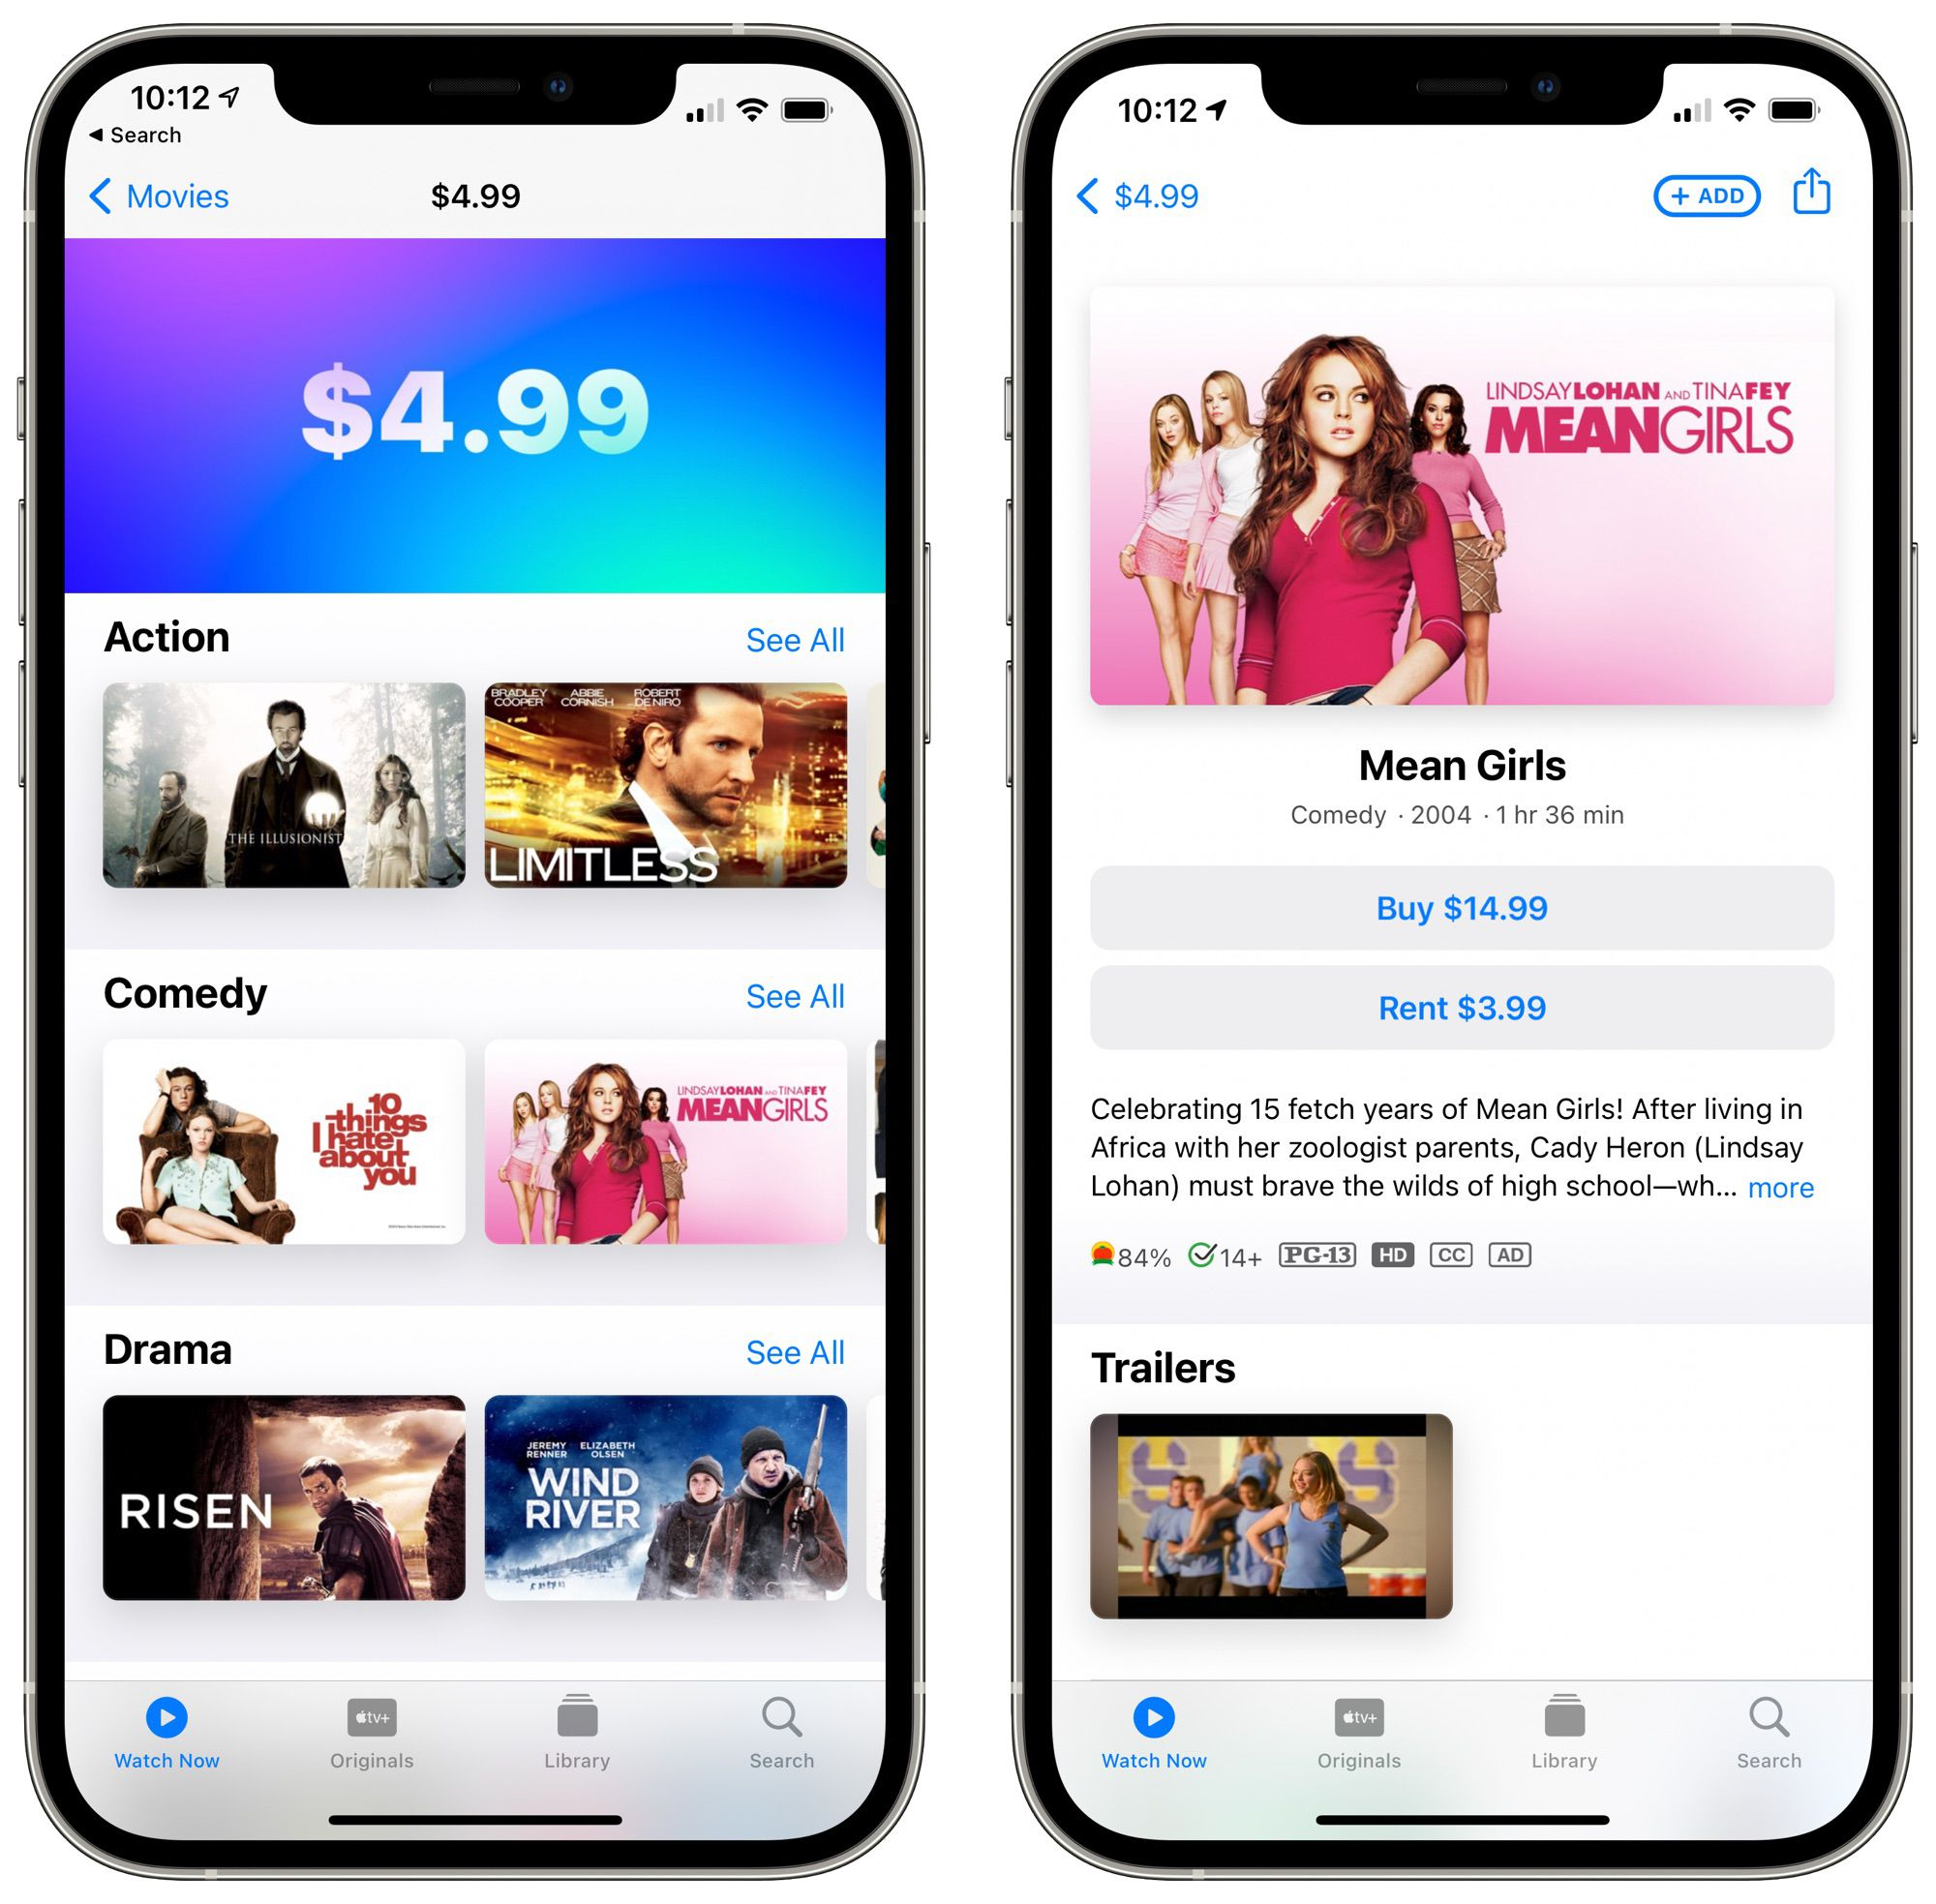 Apple's TV App Currently Has Misleading Pricing for Movies